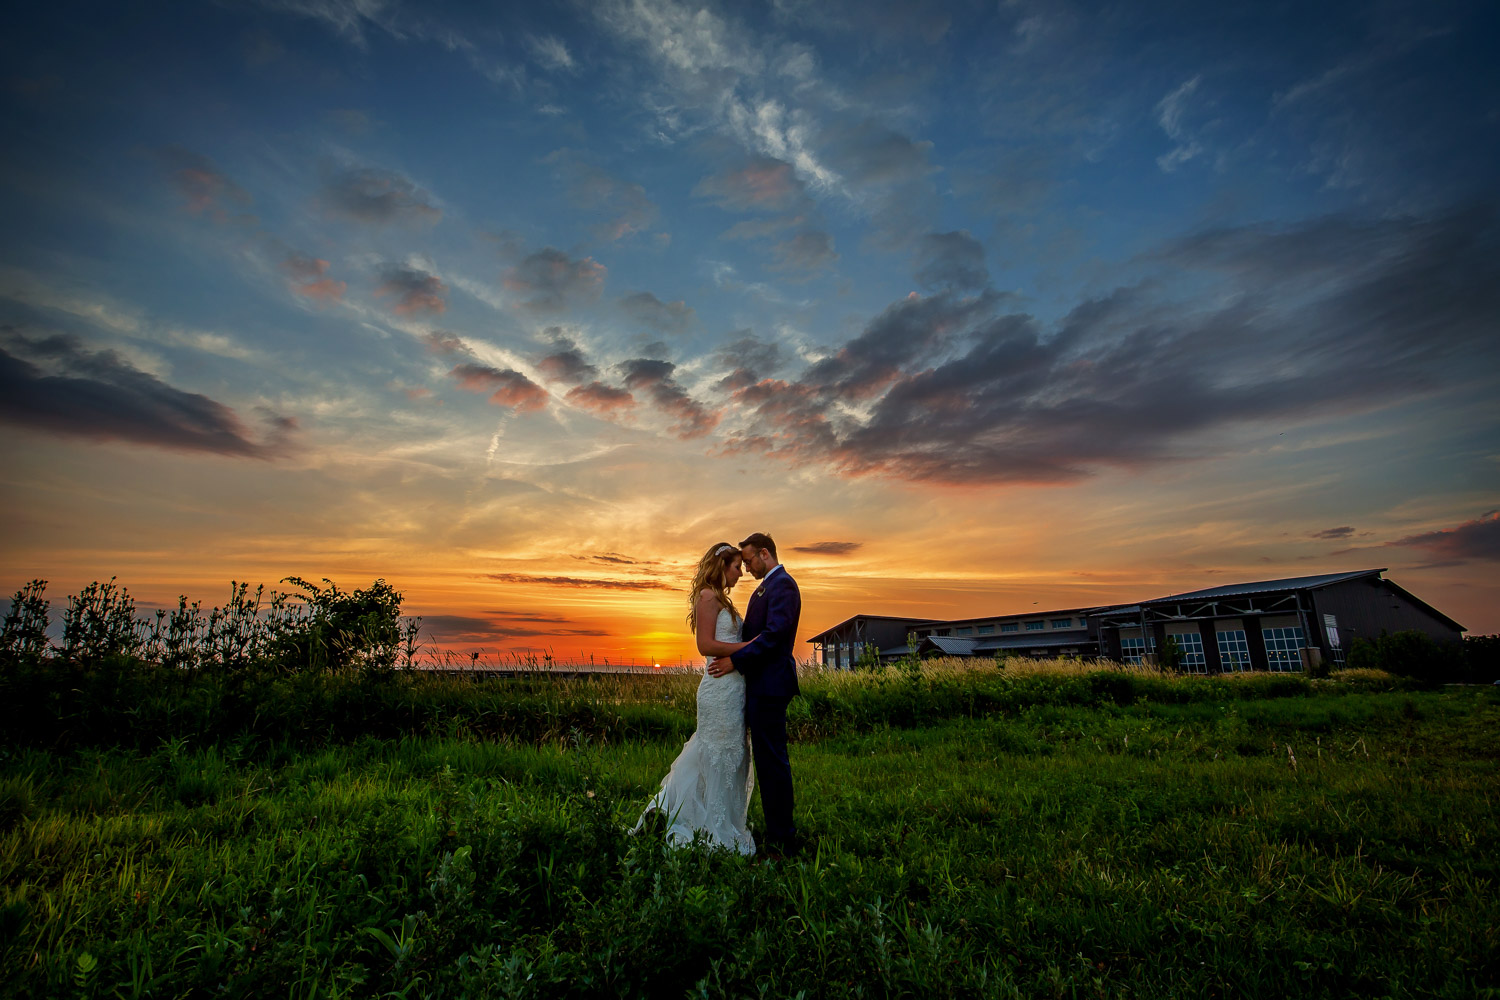 Destihl Brewery Wedding, Bride and Groom at Sunset, Normal, Illinois, Chris McGuire Photography